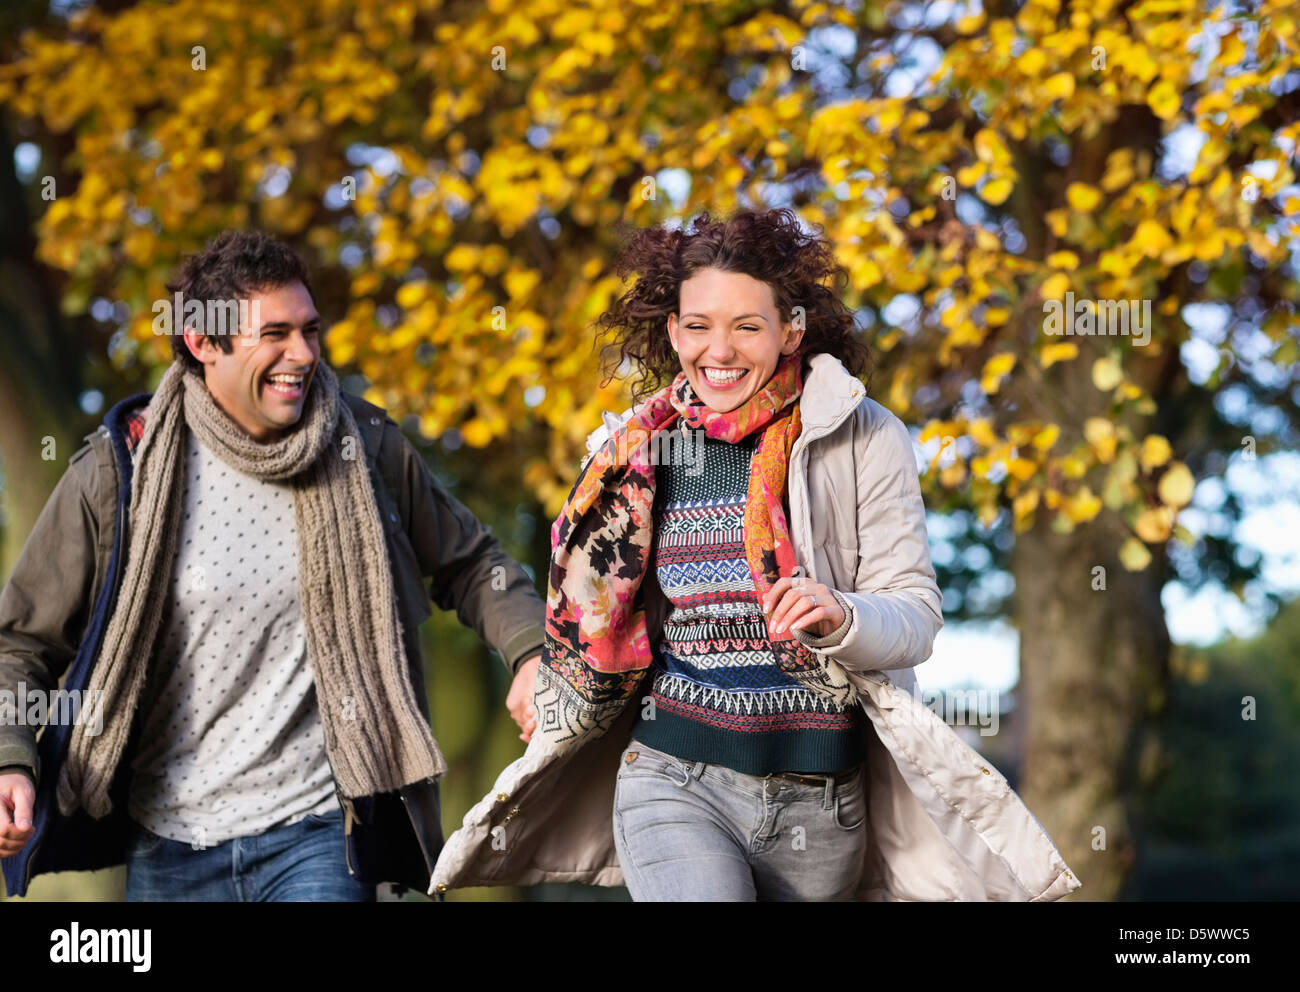 Couple running together in park - Stock Image